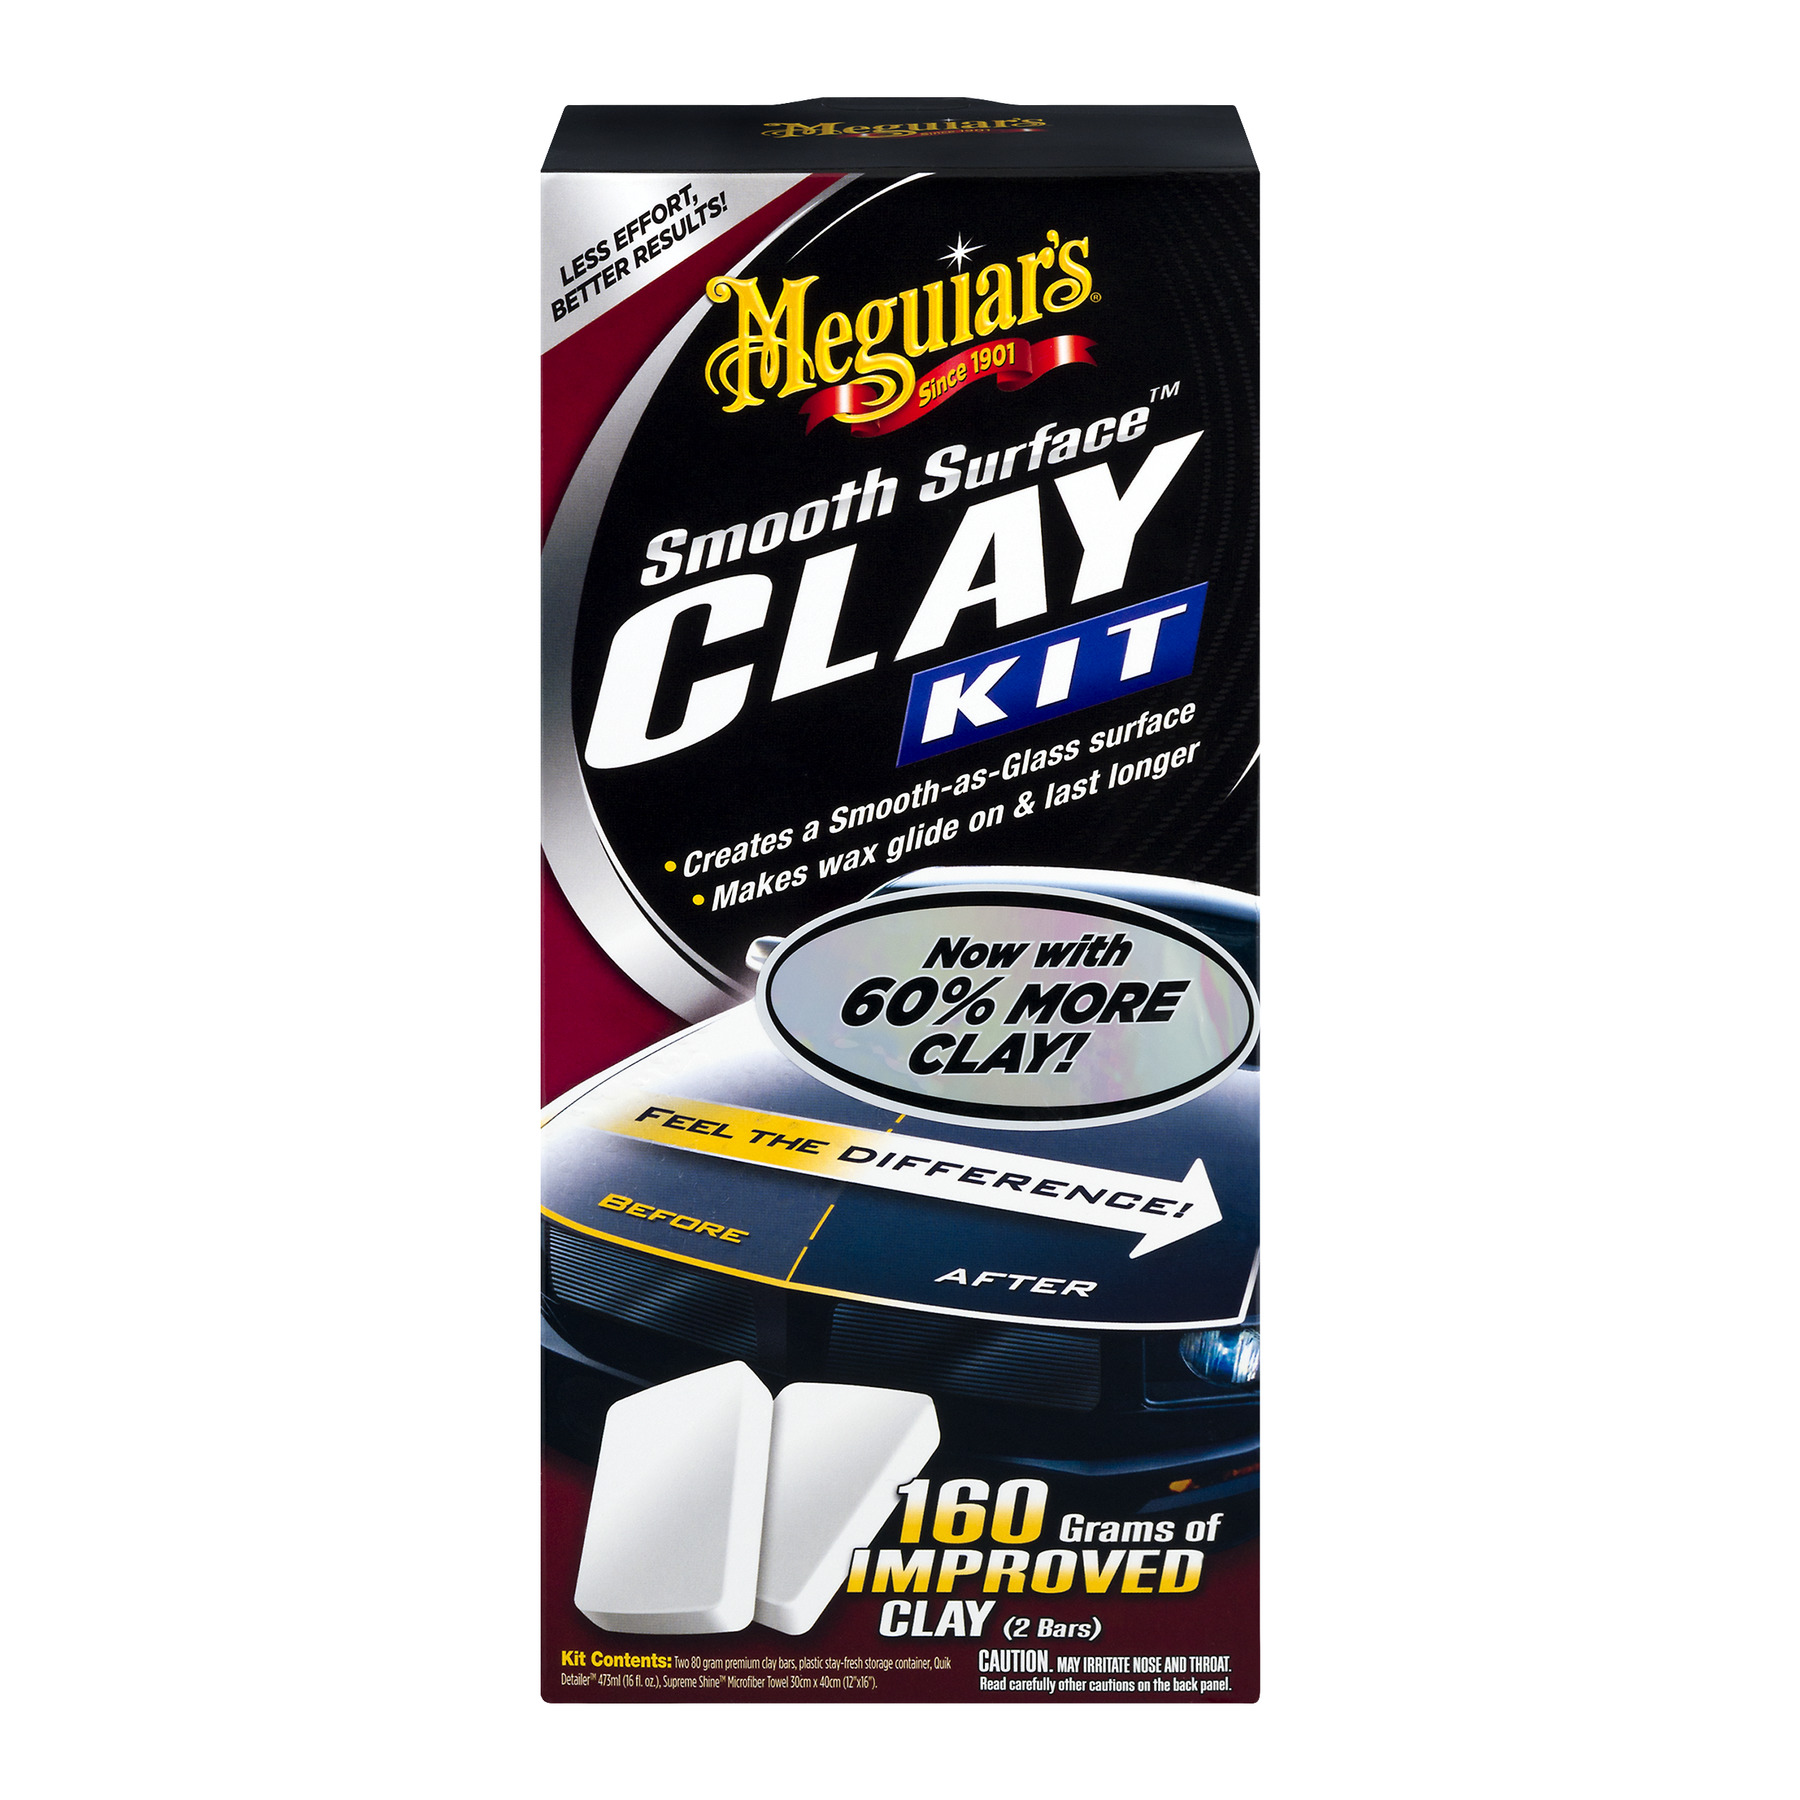 Meguiar's Smooth Surface Clay Kit, 2.0 CT